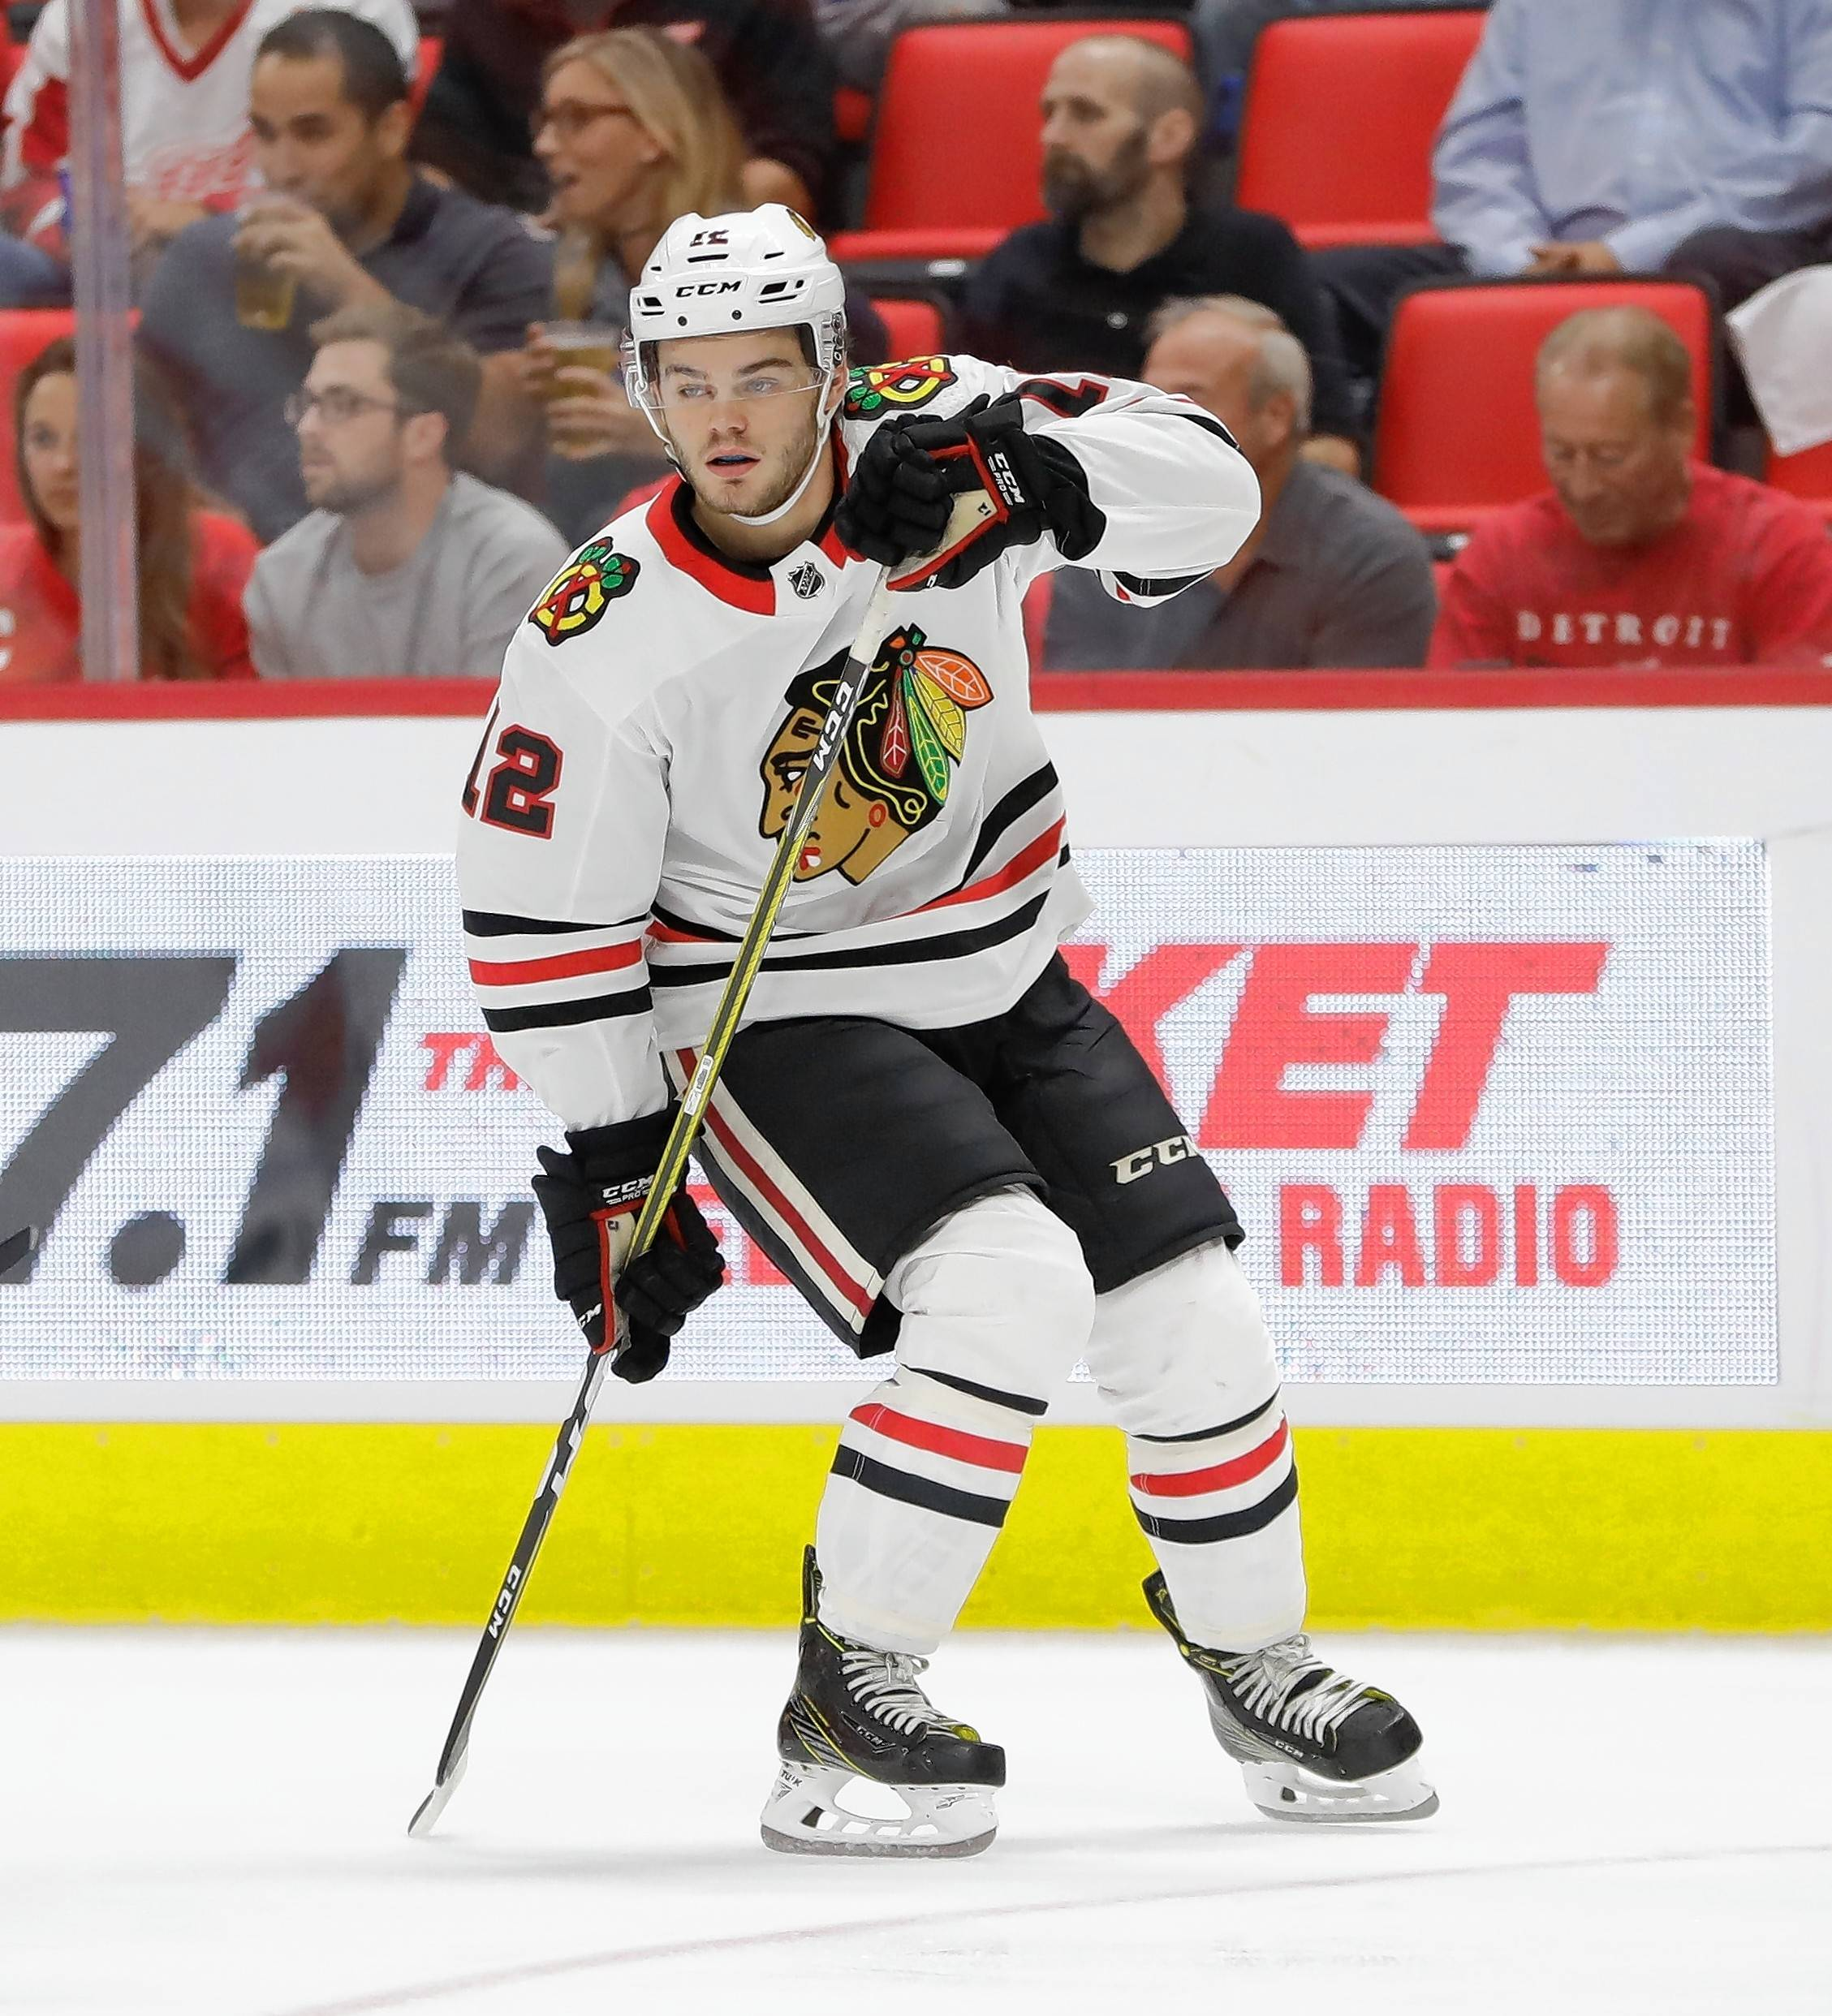 Chicago Blackhawks right wing Alex DeBrincat could make the final roster with how well he's played this preseason. DeBrincat scored in Thursday night's matchup against Detroit and had a second goal called off after goalie interference by Richard Panik.